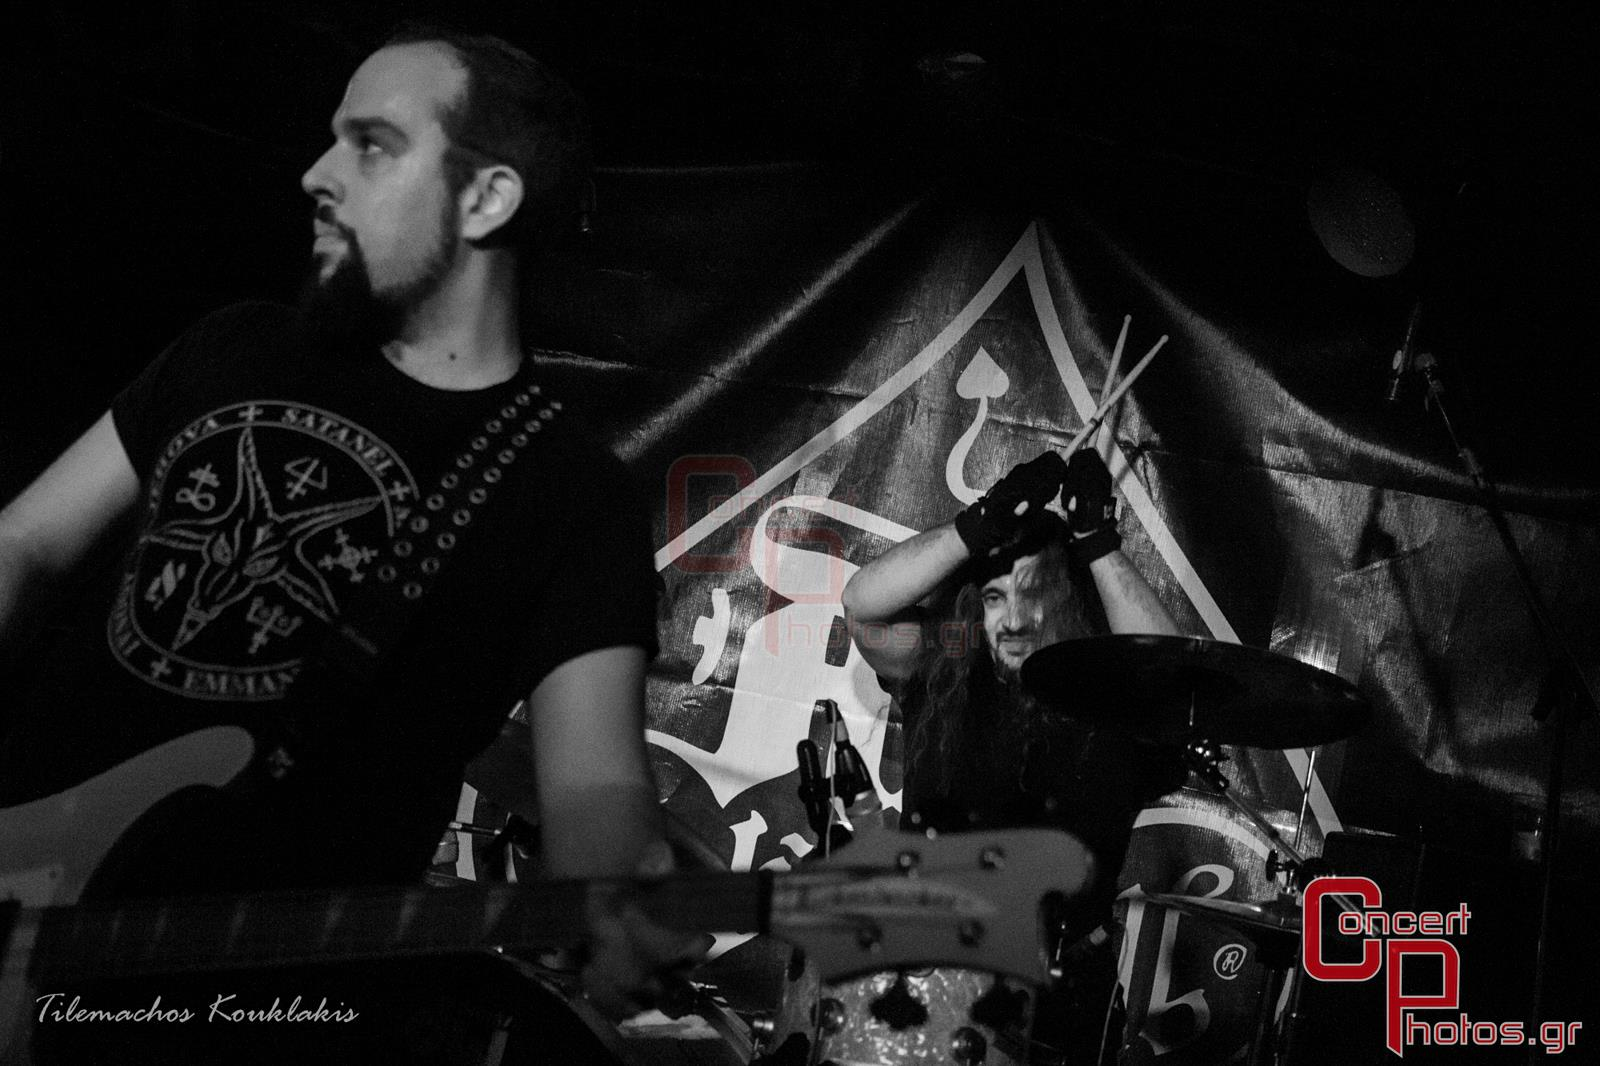 Nightstalker-Nightstalker AN Club photographer:  - concertphotos_-23